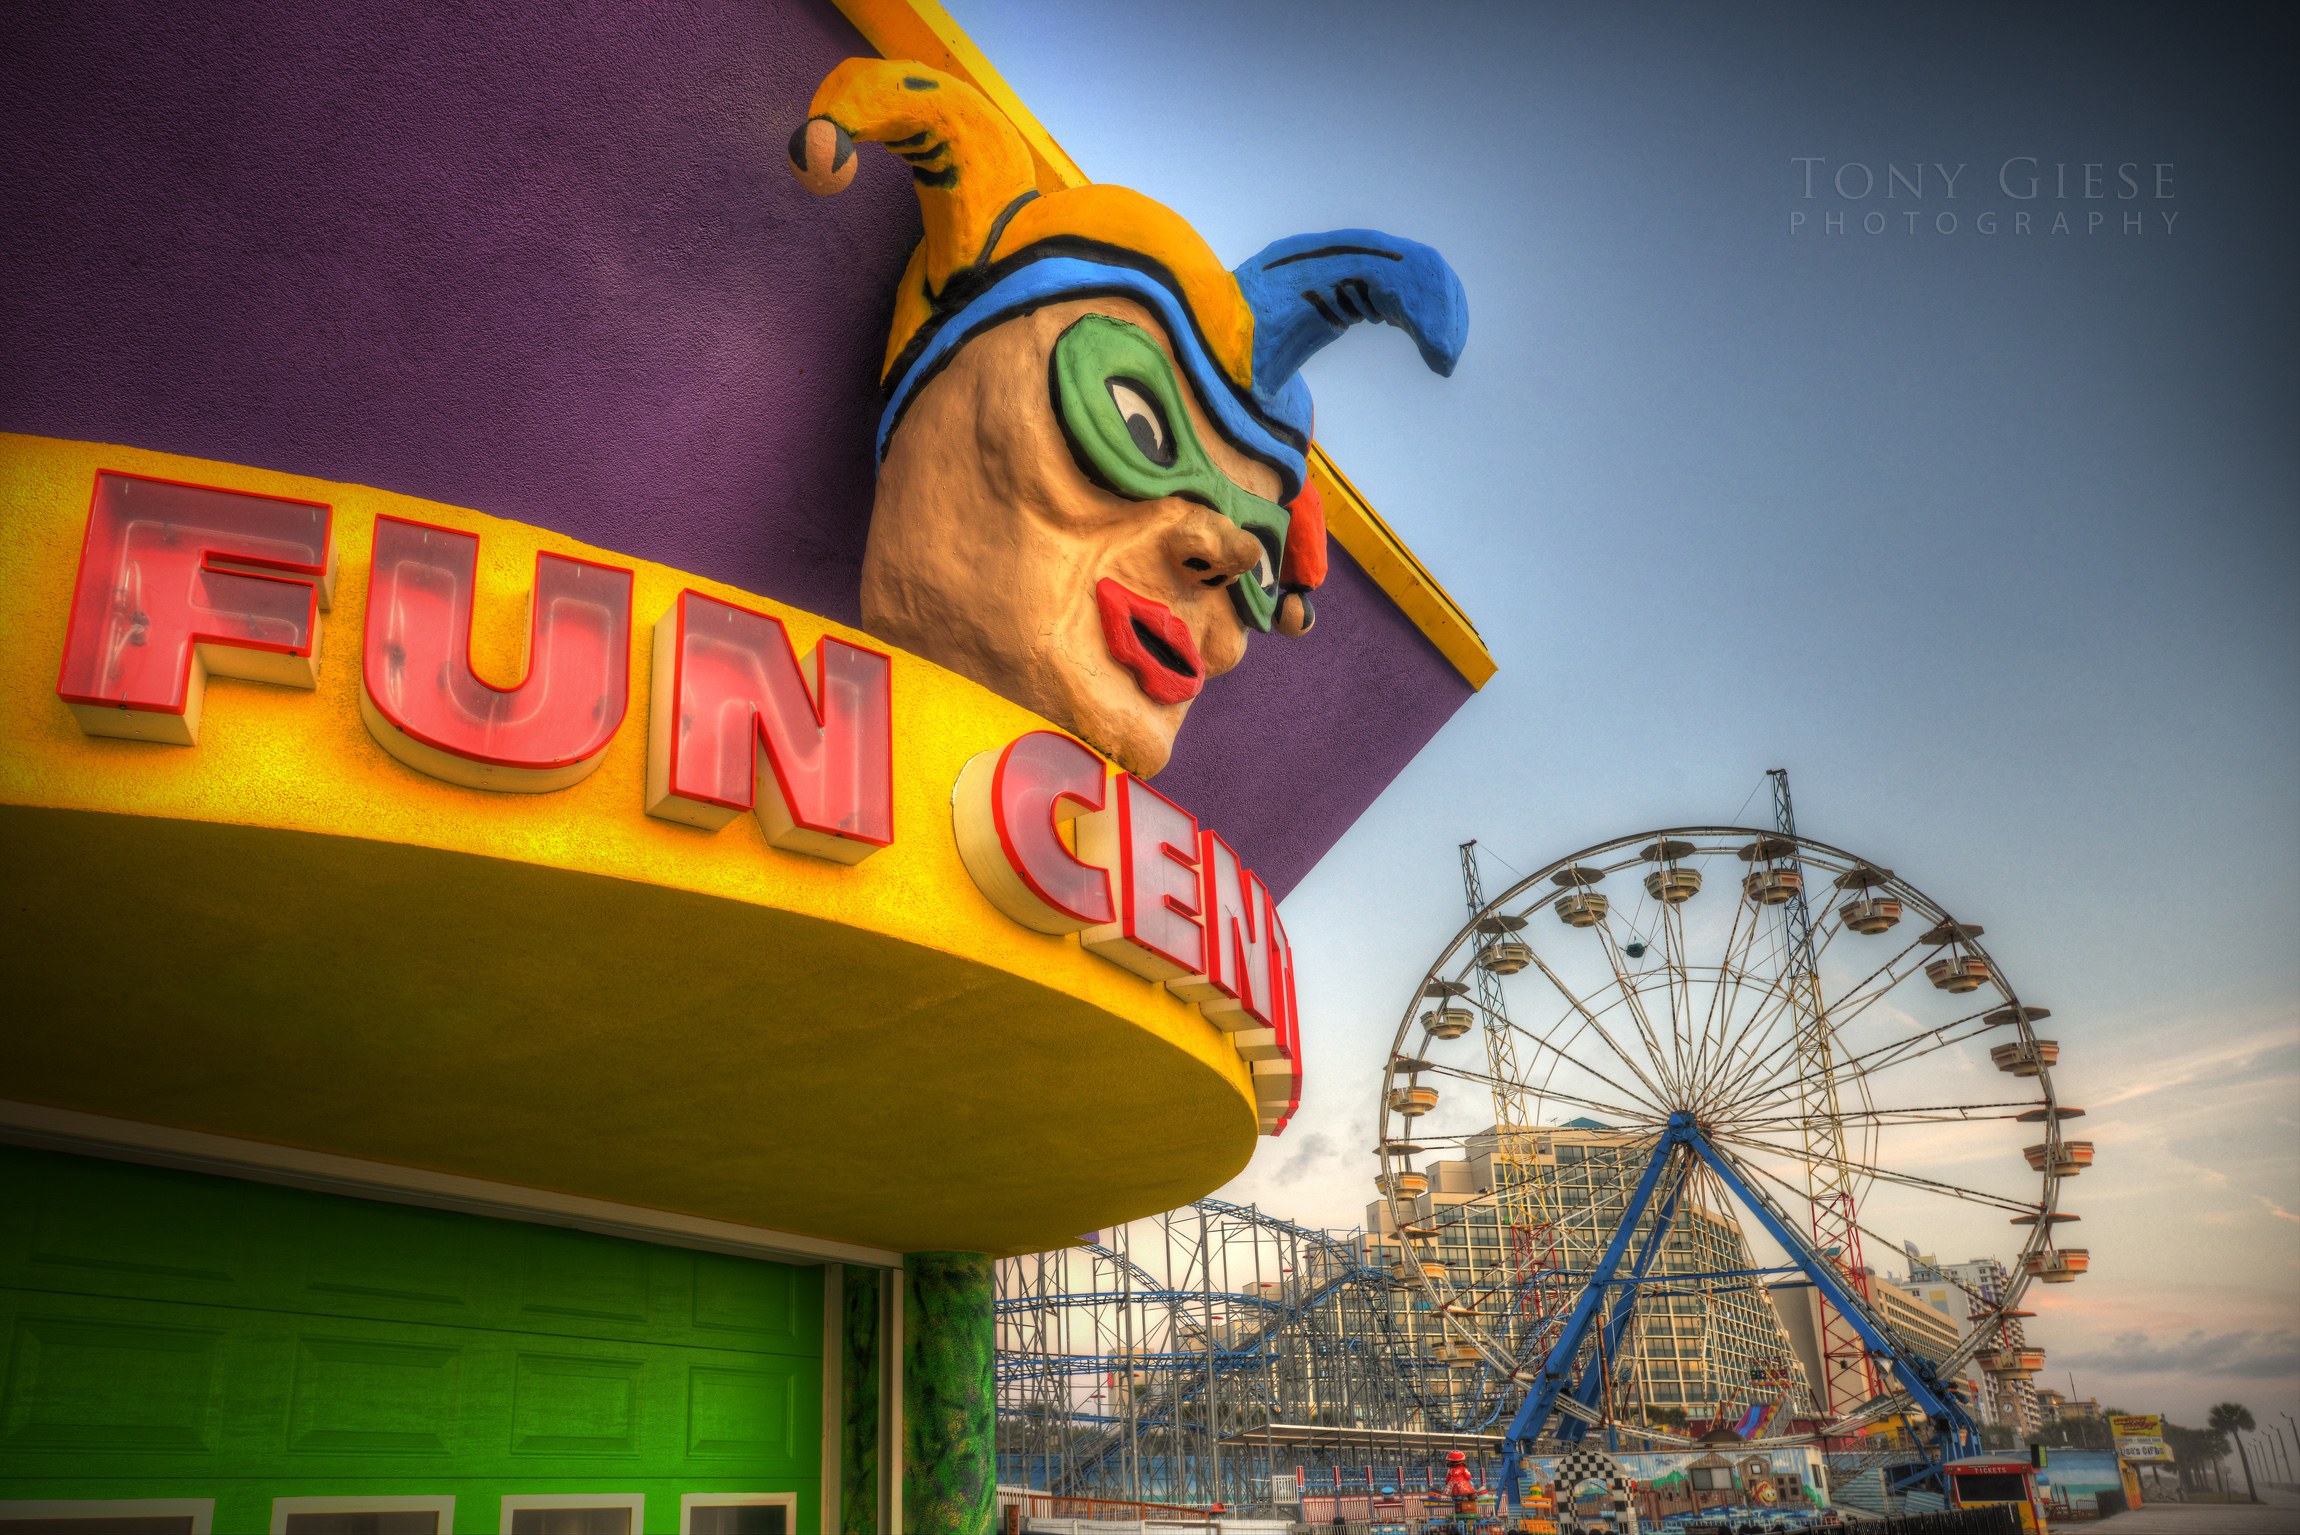 Amusement Fun Center on Boardwalk Daytona Beach, Florida.